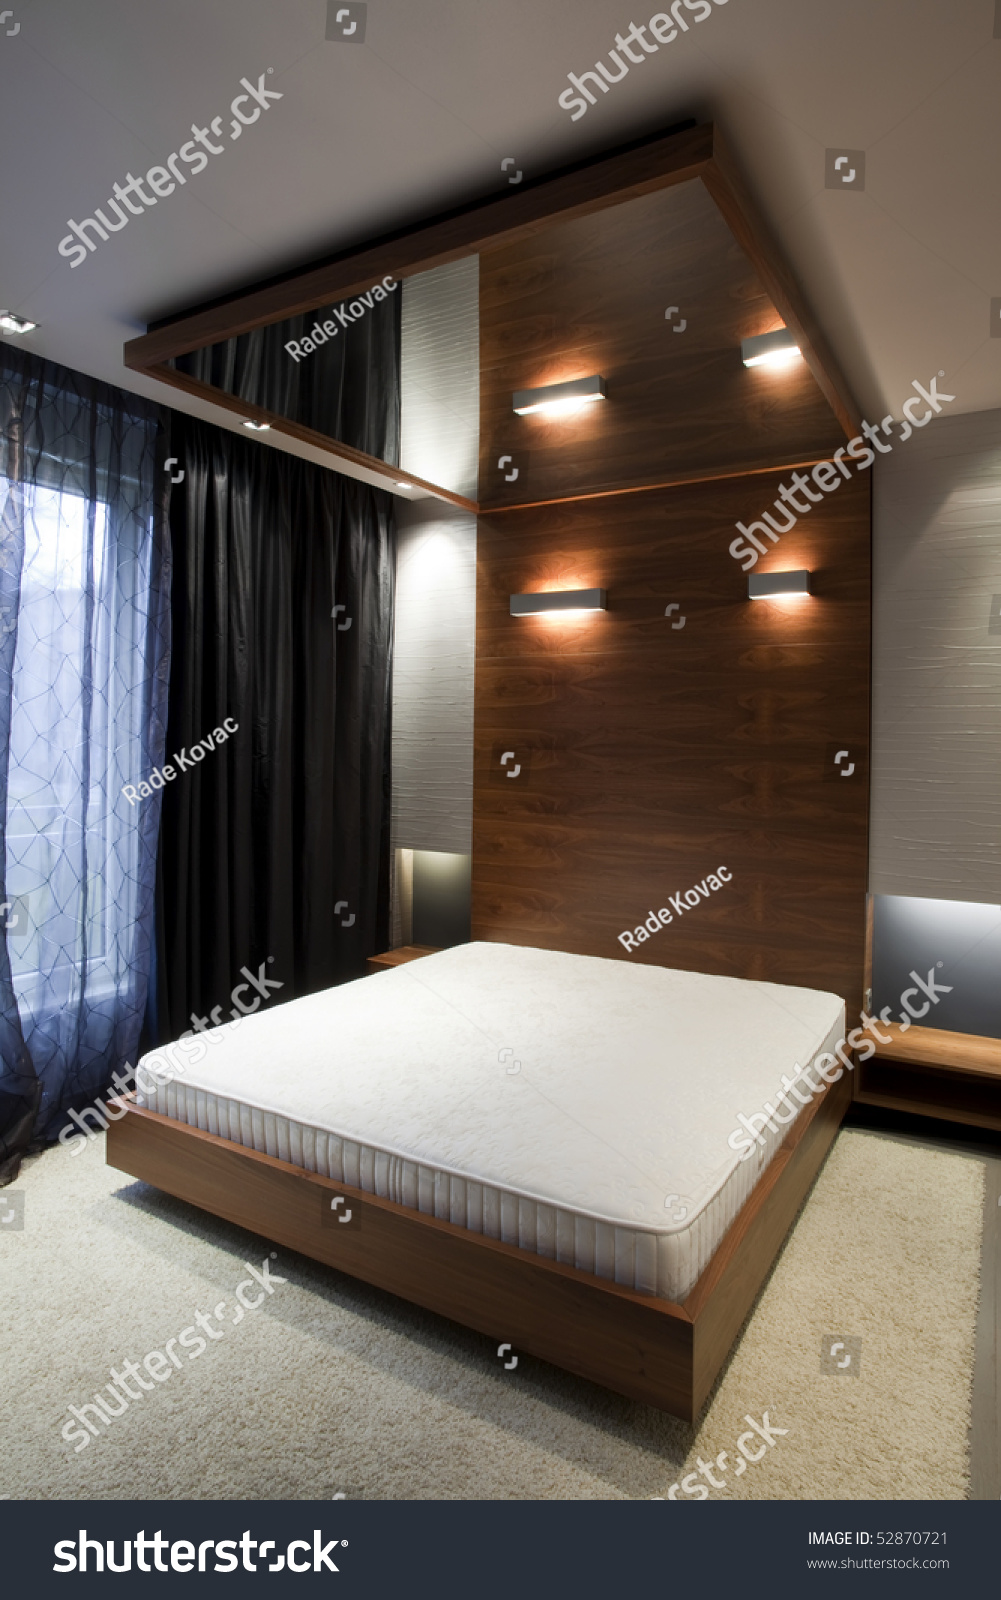 bedroom ceiling mirror bedroom with mirror on the ceiling stock photo 52870721 10304